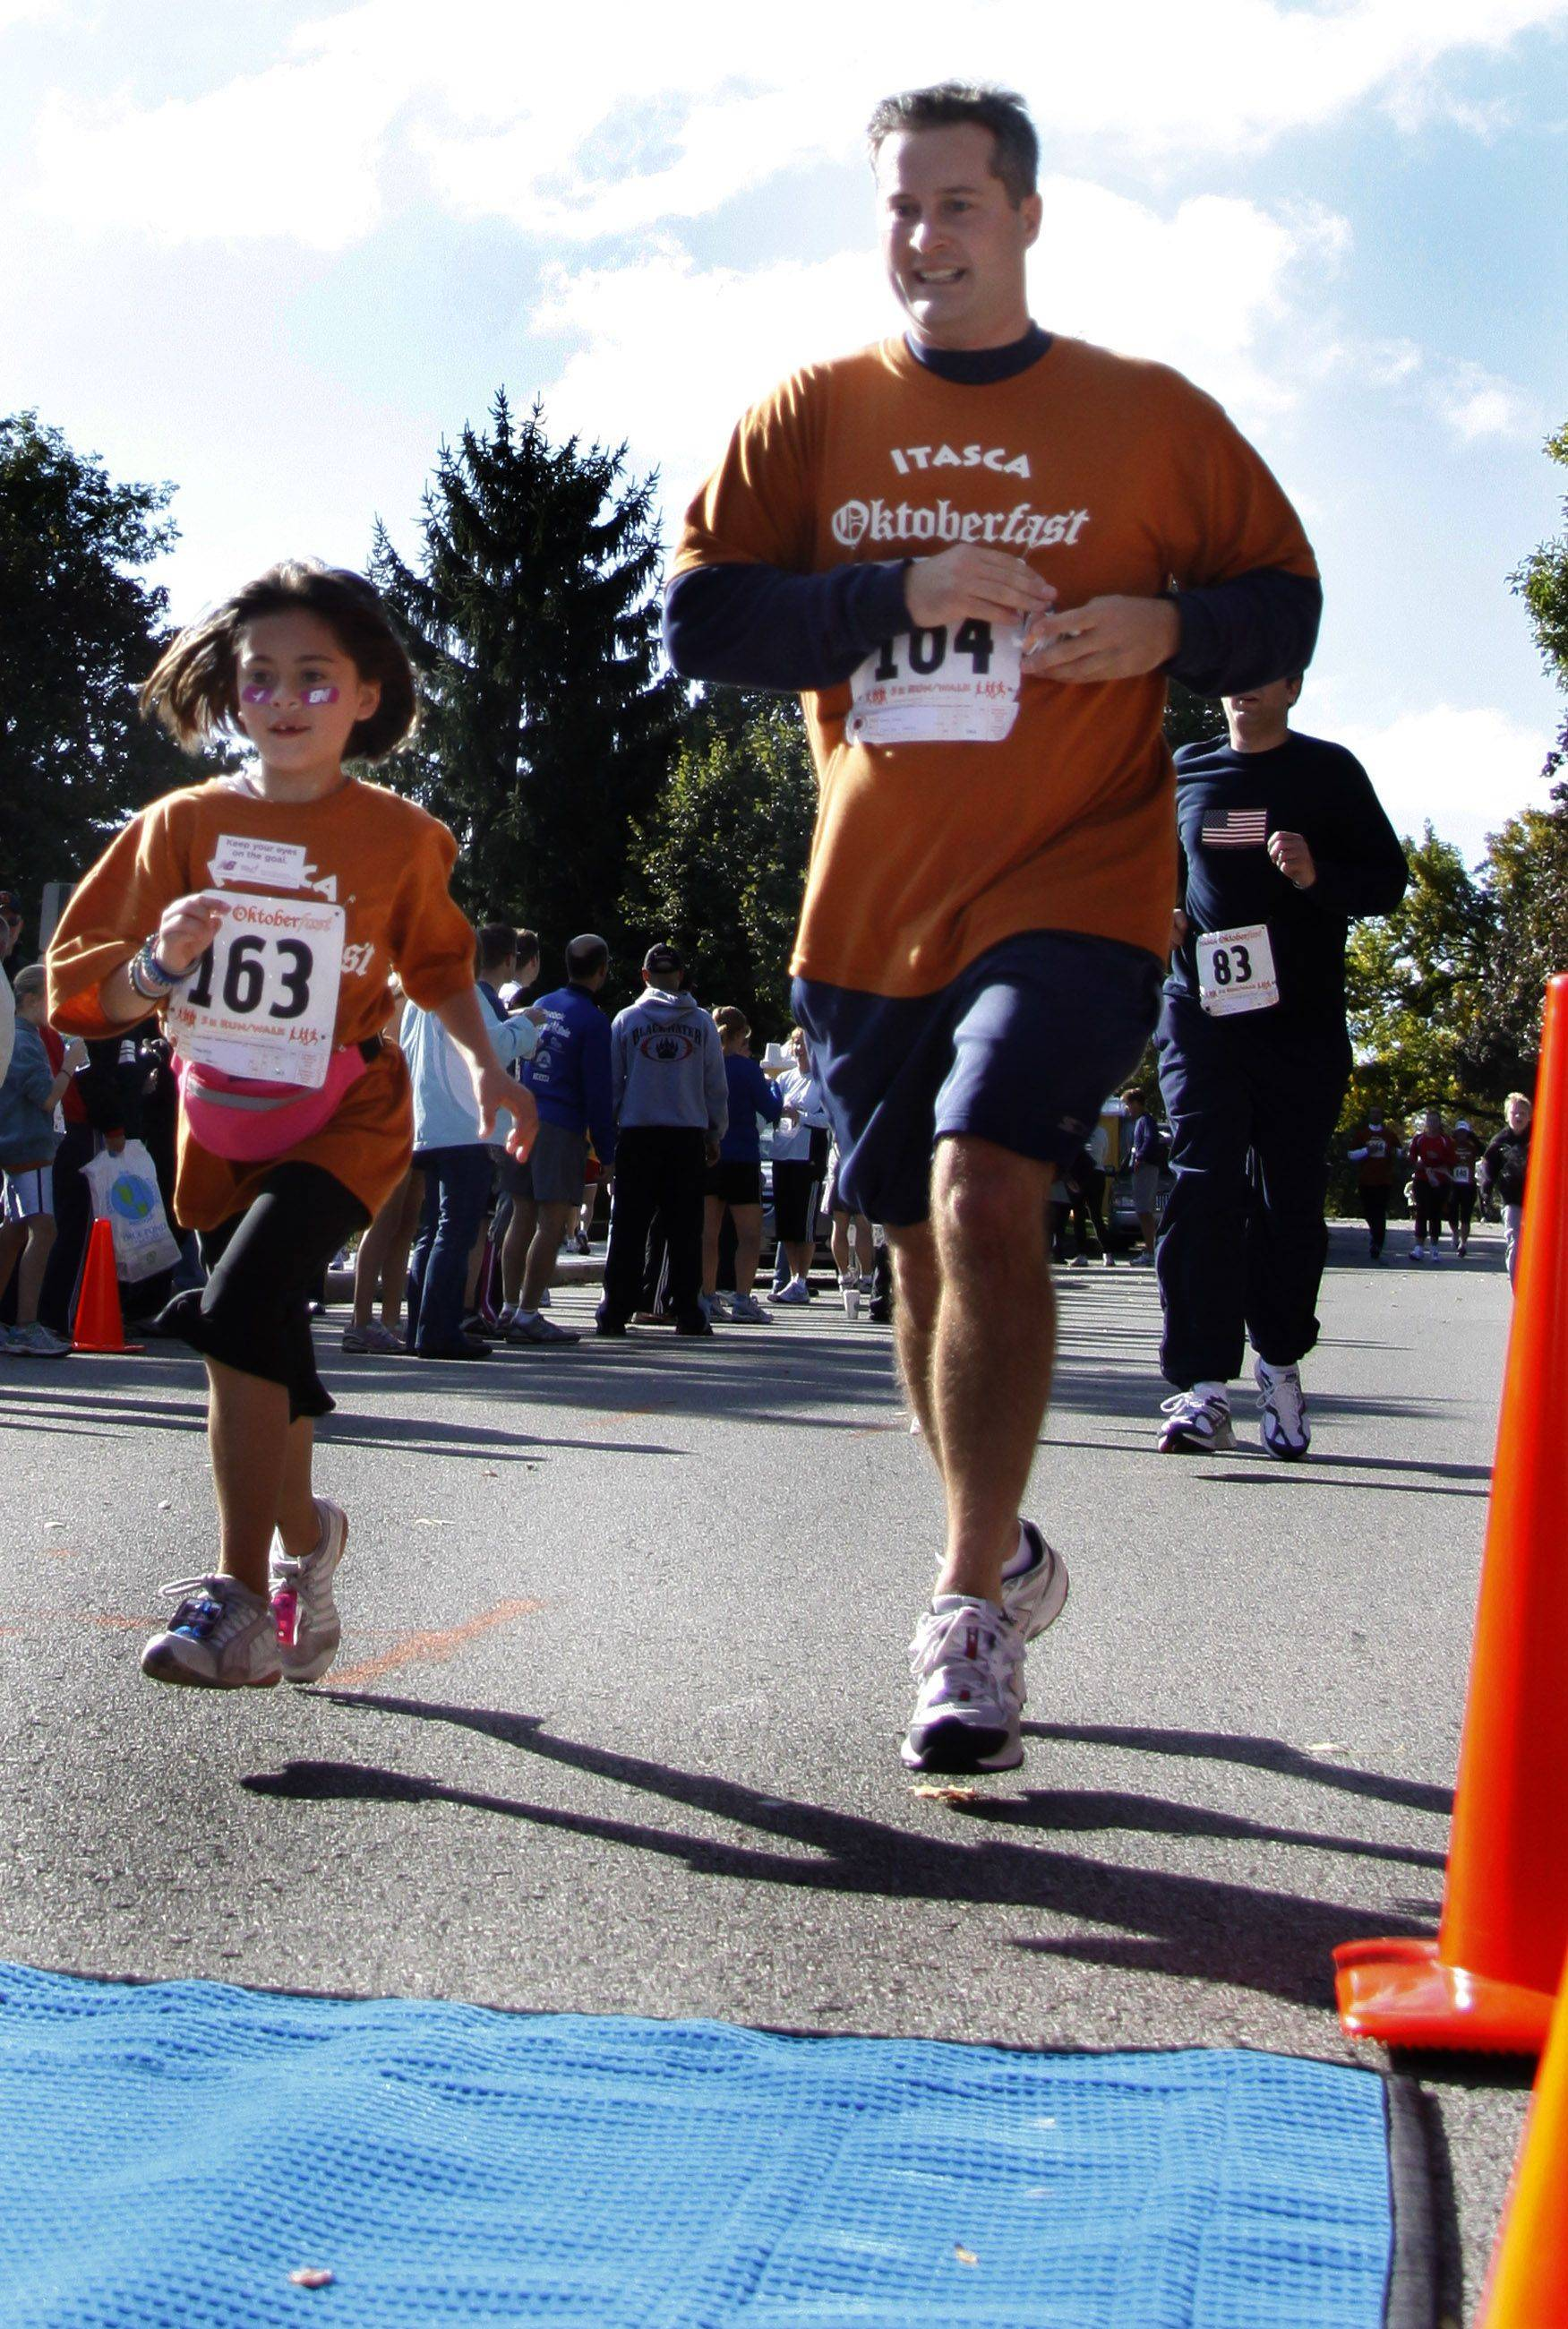 Emma Savage, 8, and her father Brian Savage, both of Itasca stroll to the finish line at Saturdays Oktoberfast 5K Run/Walk. This was the second year the event was held with an estimated $10,000 raised to benefit Marklund, a not-for-profit organization that provides care to those who have severe and profound developmental disabilities.